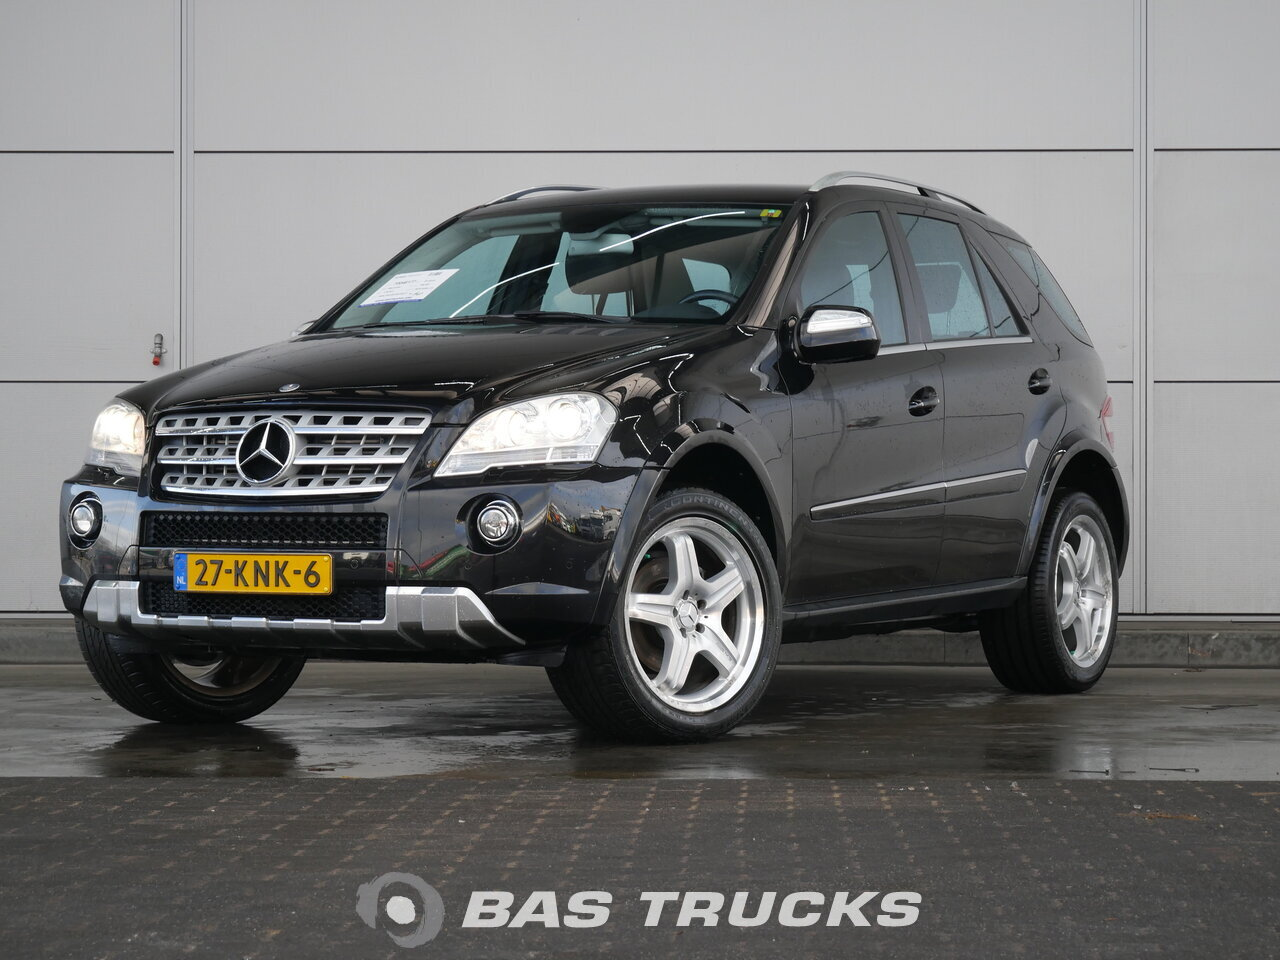 mercedes ml 280 3 0 cdi 4matic voiture 20400 bas trucks. Black Bedroom Furniture Sets. Home Design Ideas